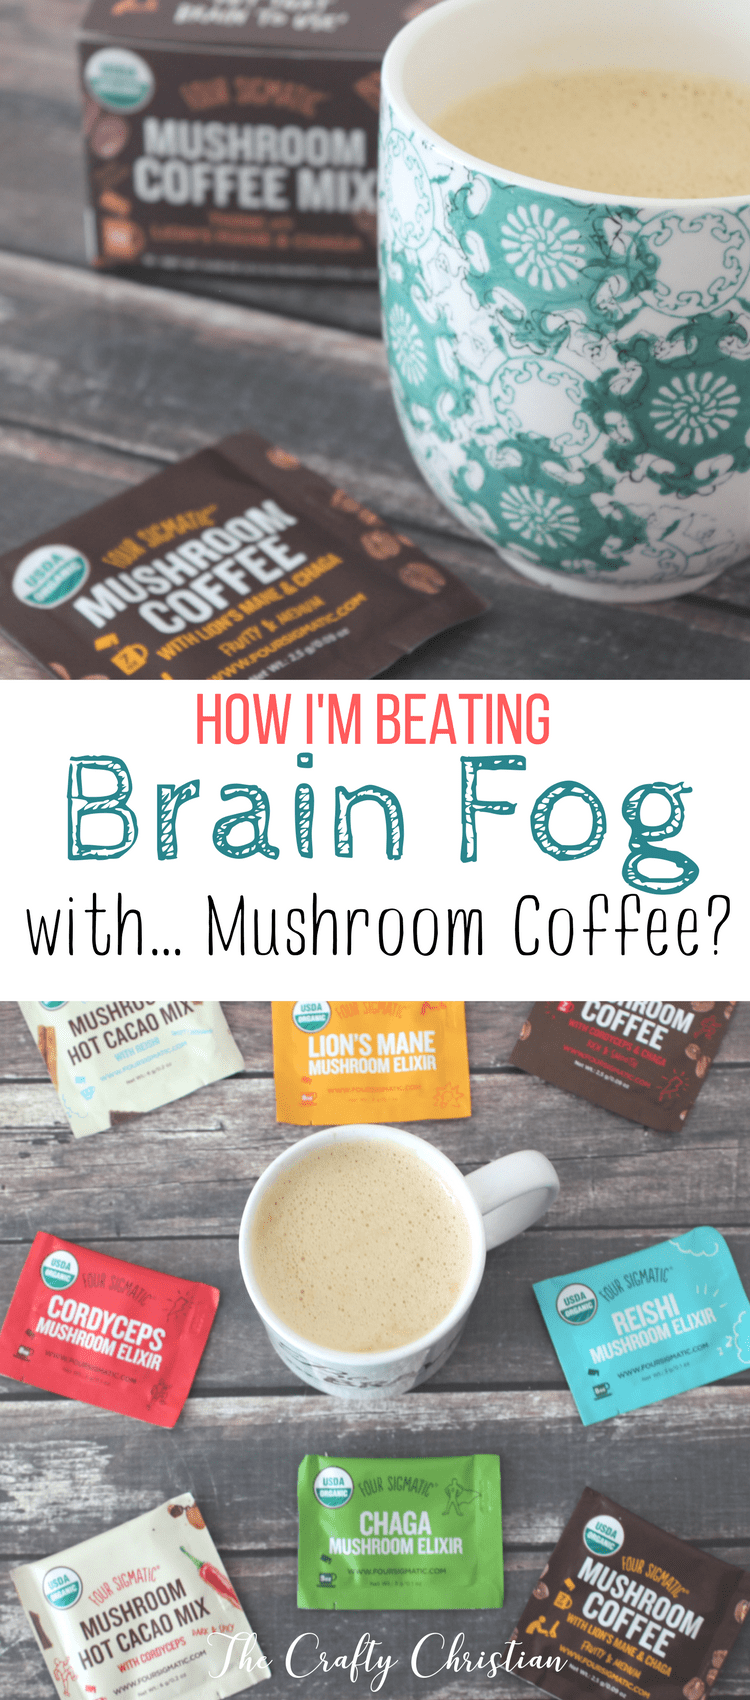 I've been beating brain fog immensely using mushroom coffee.  I feel like I can think more clearly, and I am functioning more like a normal person again.